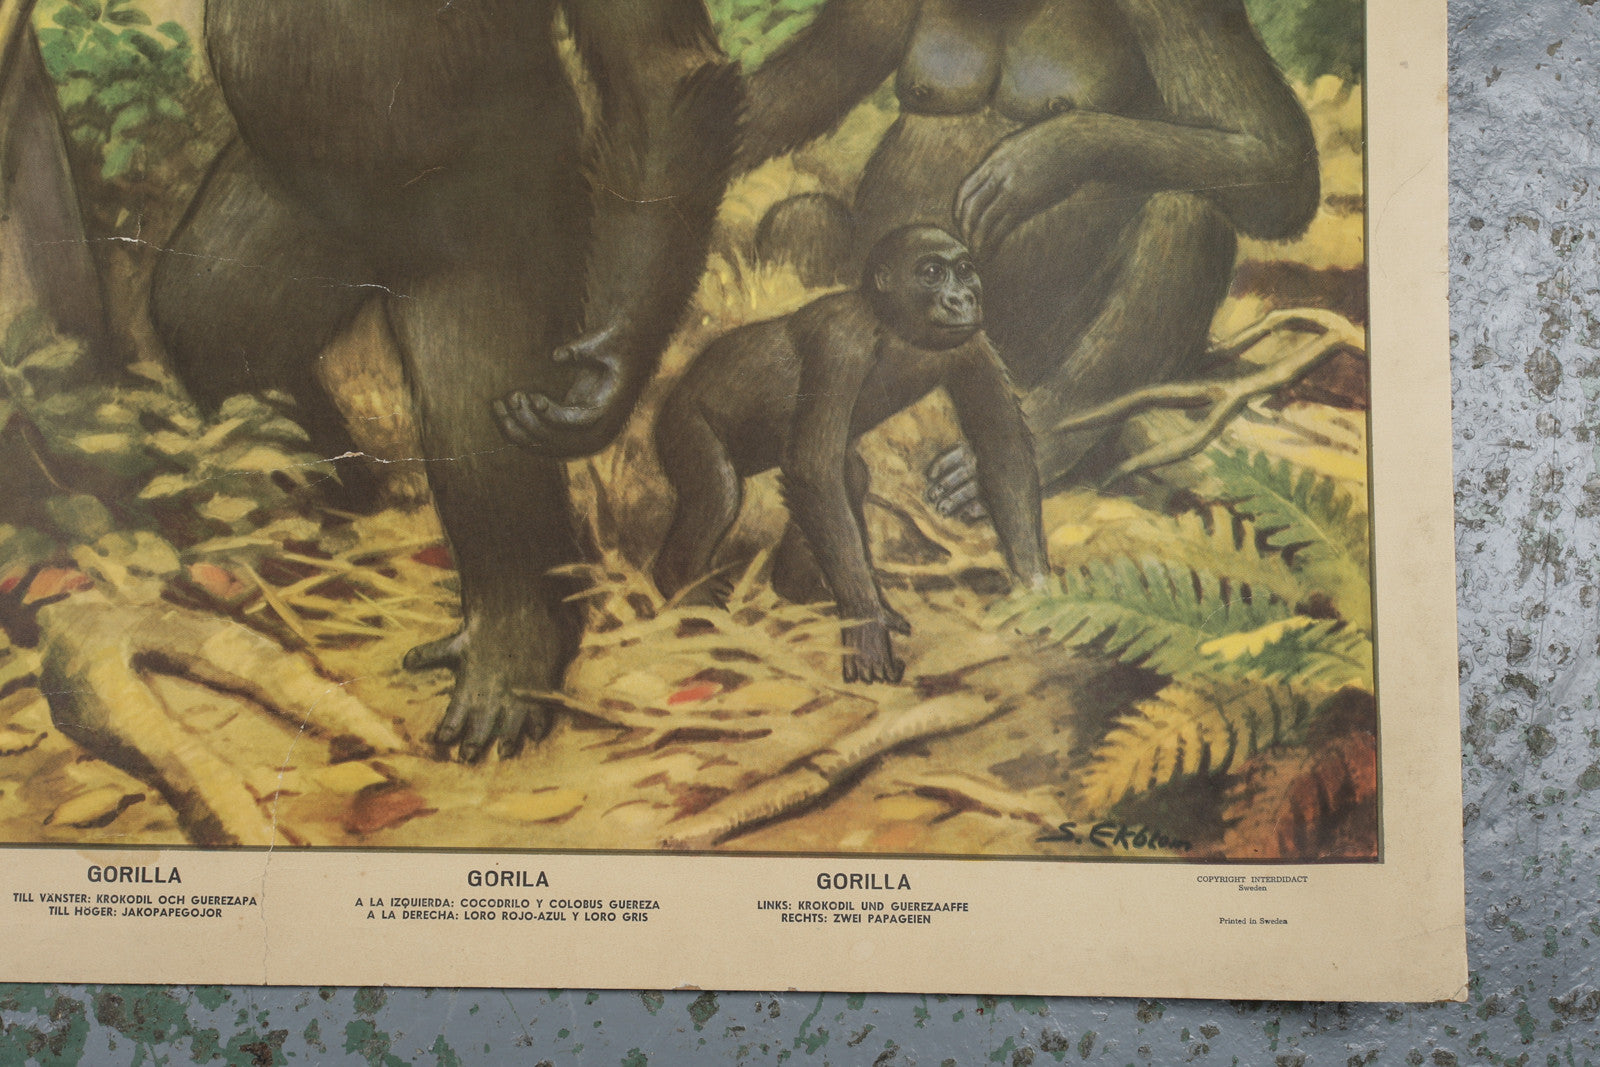 A 1960s educational wall chart of gorillas available to buy from Industrious Interiors, an online vintage furniture and homeware store based in Nottingham, England.